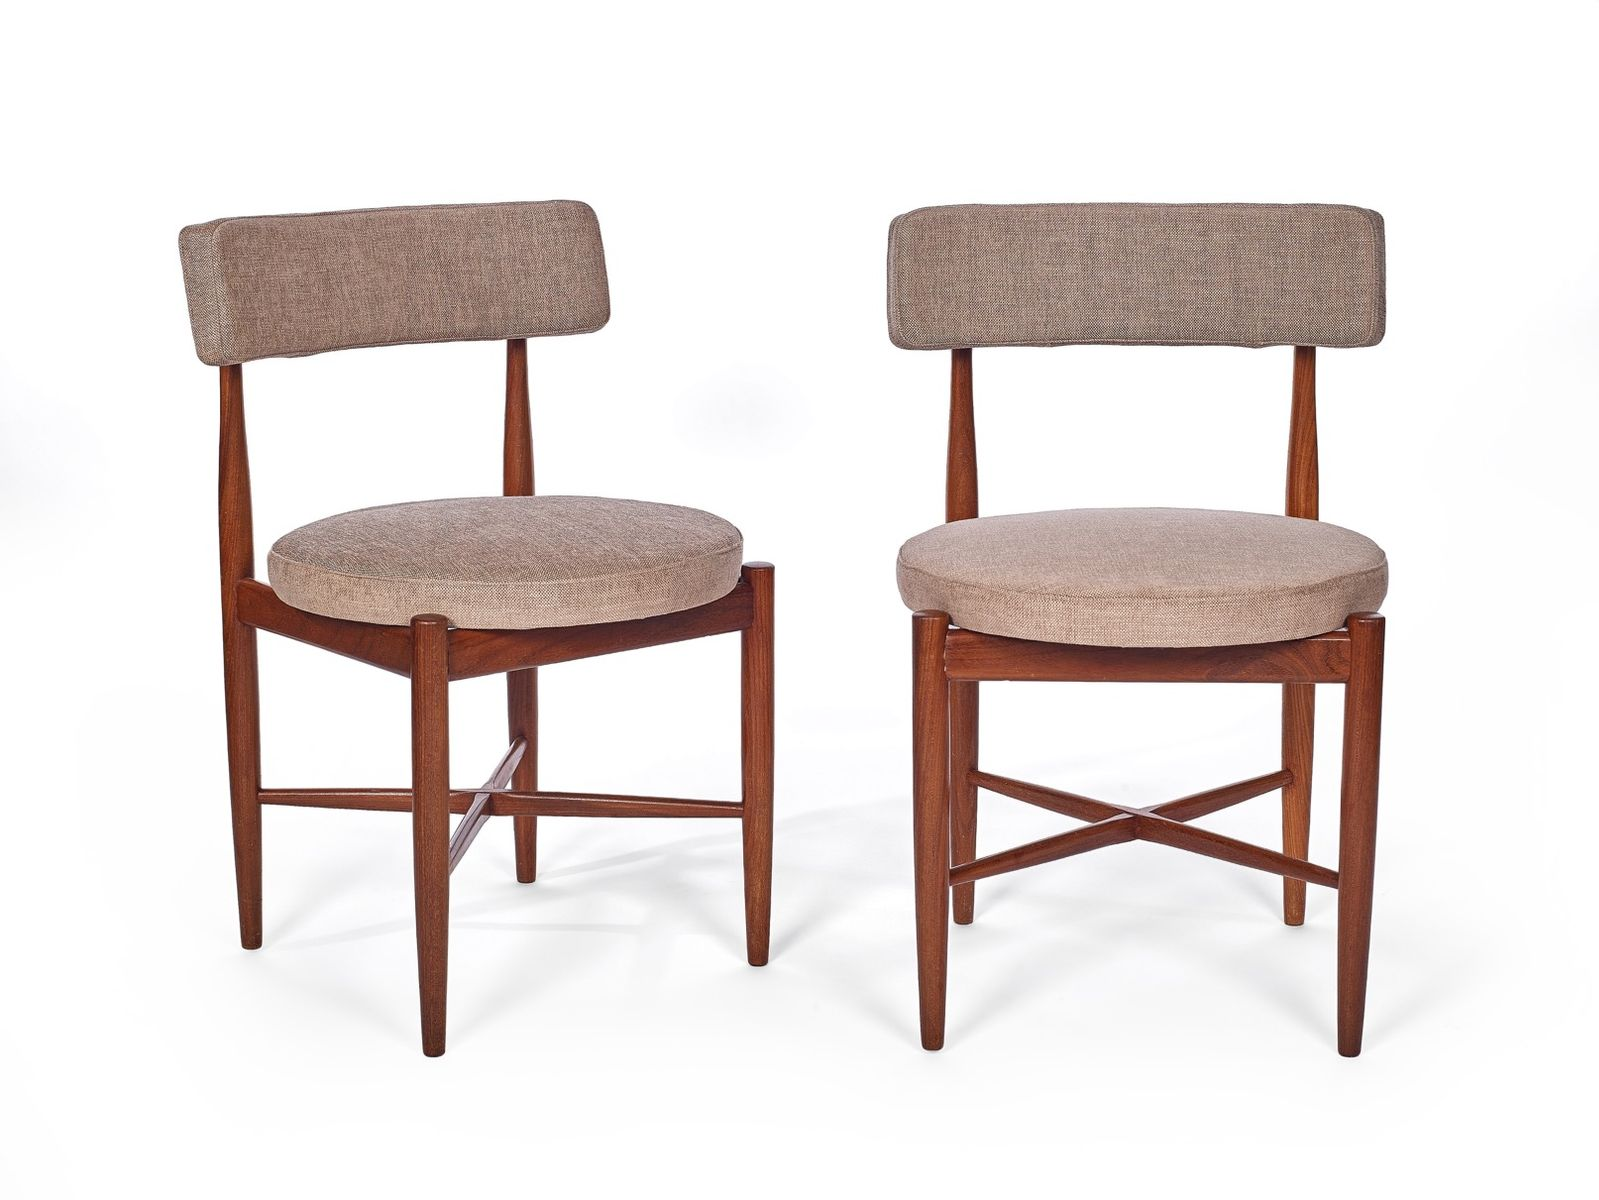 Teak dining chairs from g plan set of 2 for sale at pamono for G plan teak dining room chairs